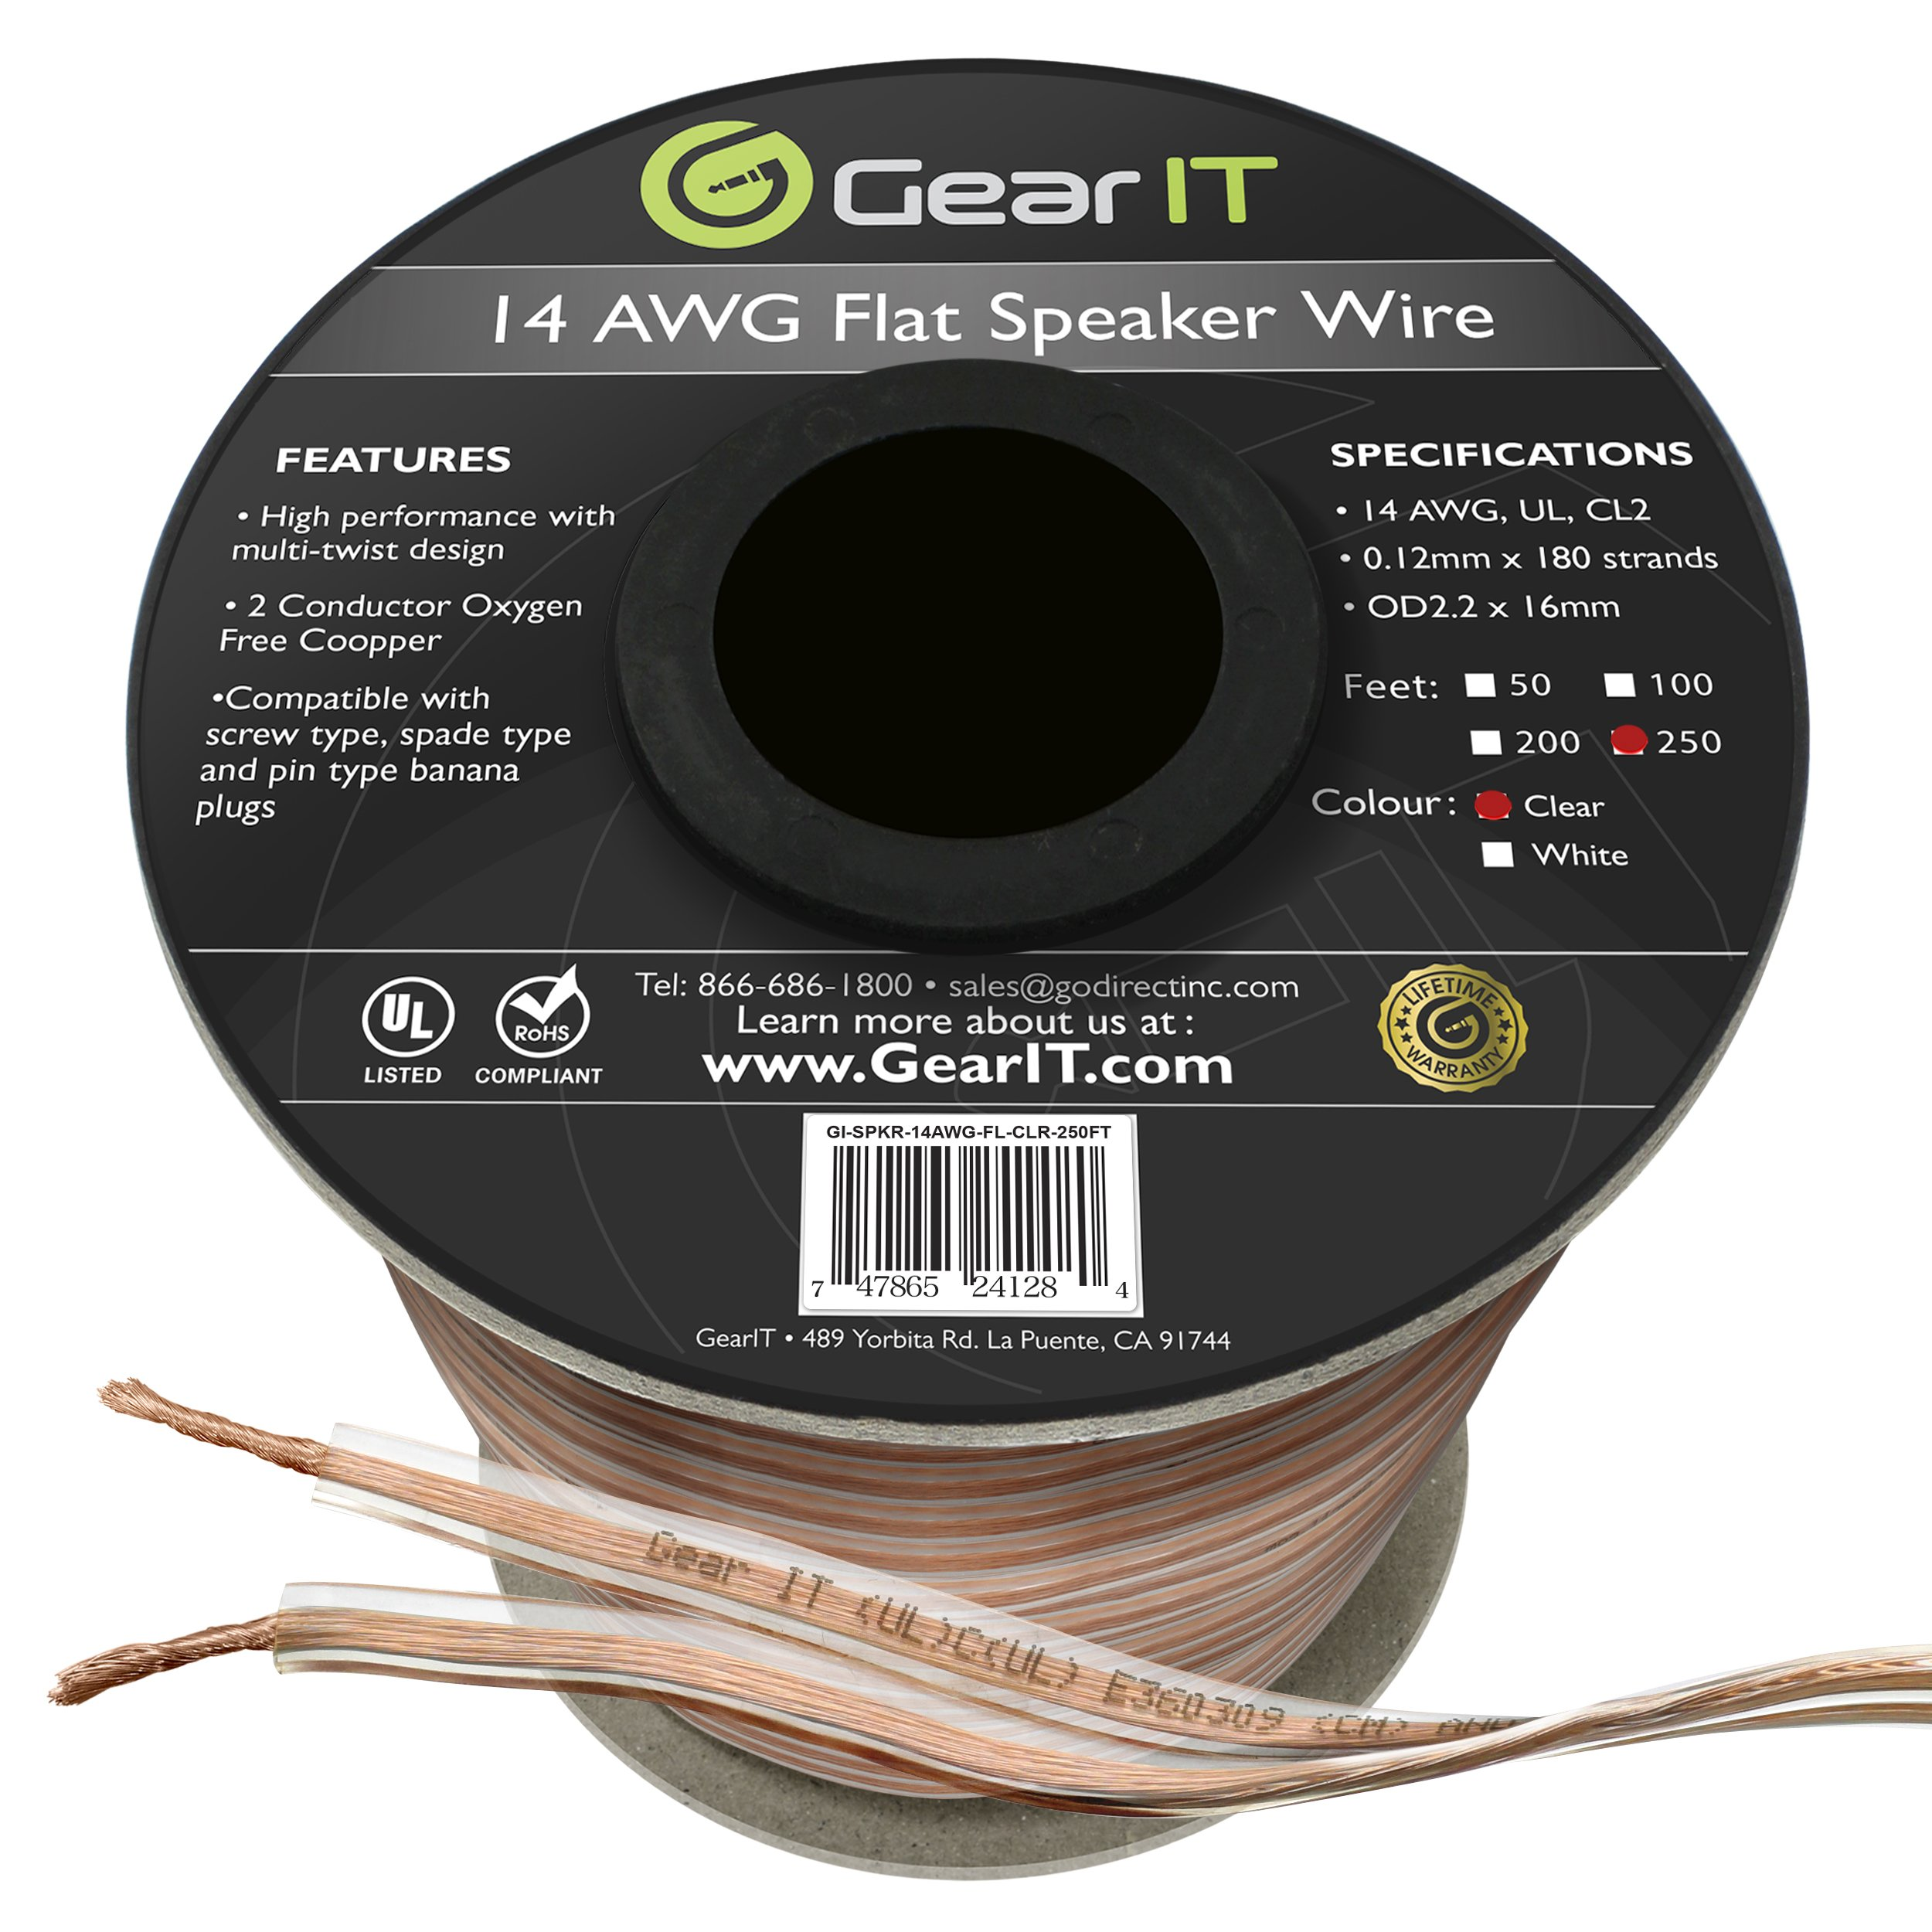 GearIT Elite Series 14AWG Flat Speaker Wire (250 Feet/76 Meters) - Oxygen Free Copper (OFC) CL2 Rated In-Wall Installation for Home Theater, Car Audio, and Outdoor Use, Clear by GearIT